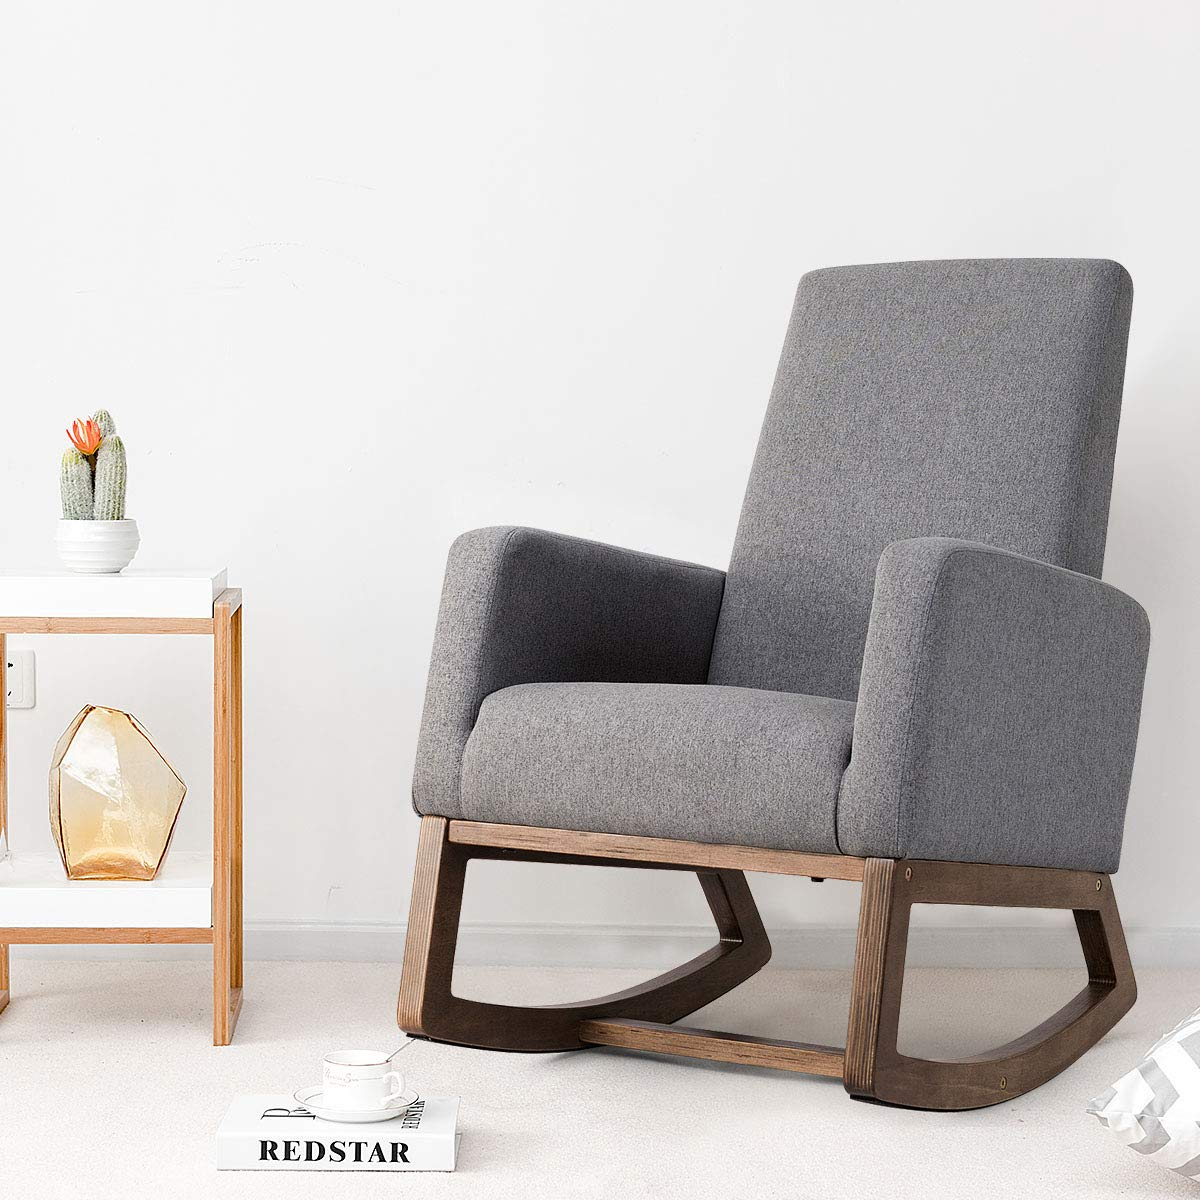 The most comfortable and modern nursery chairs you need in 2019